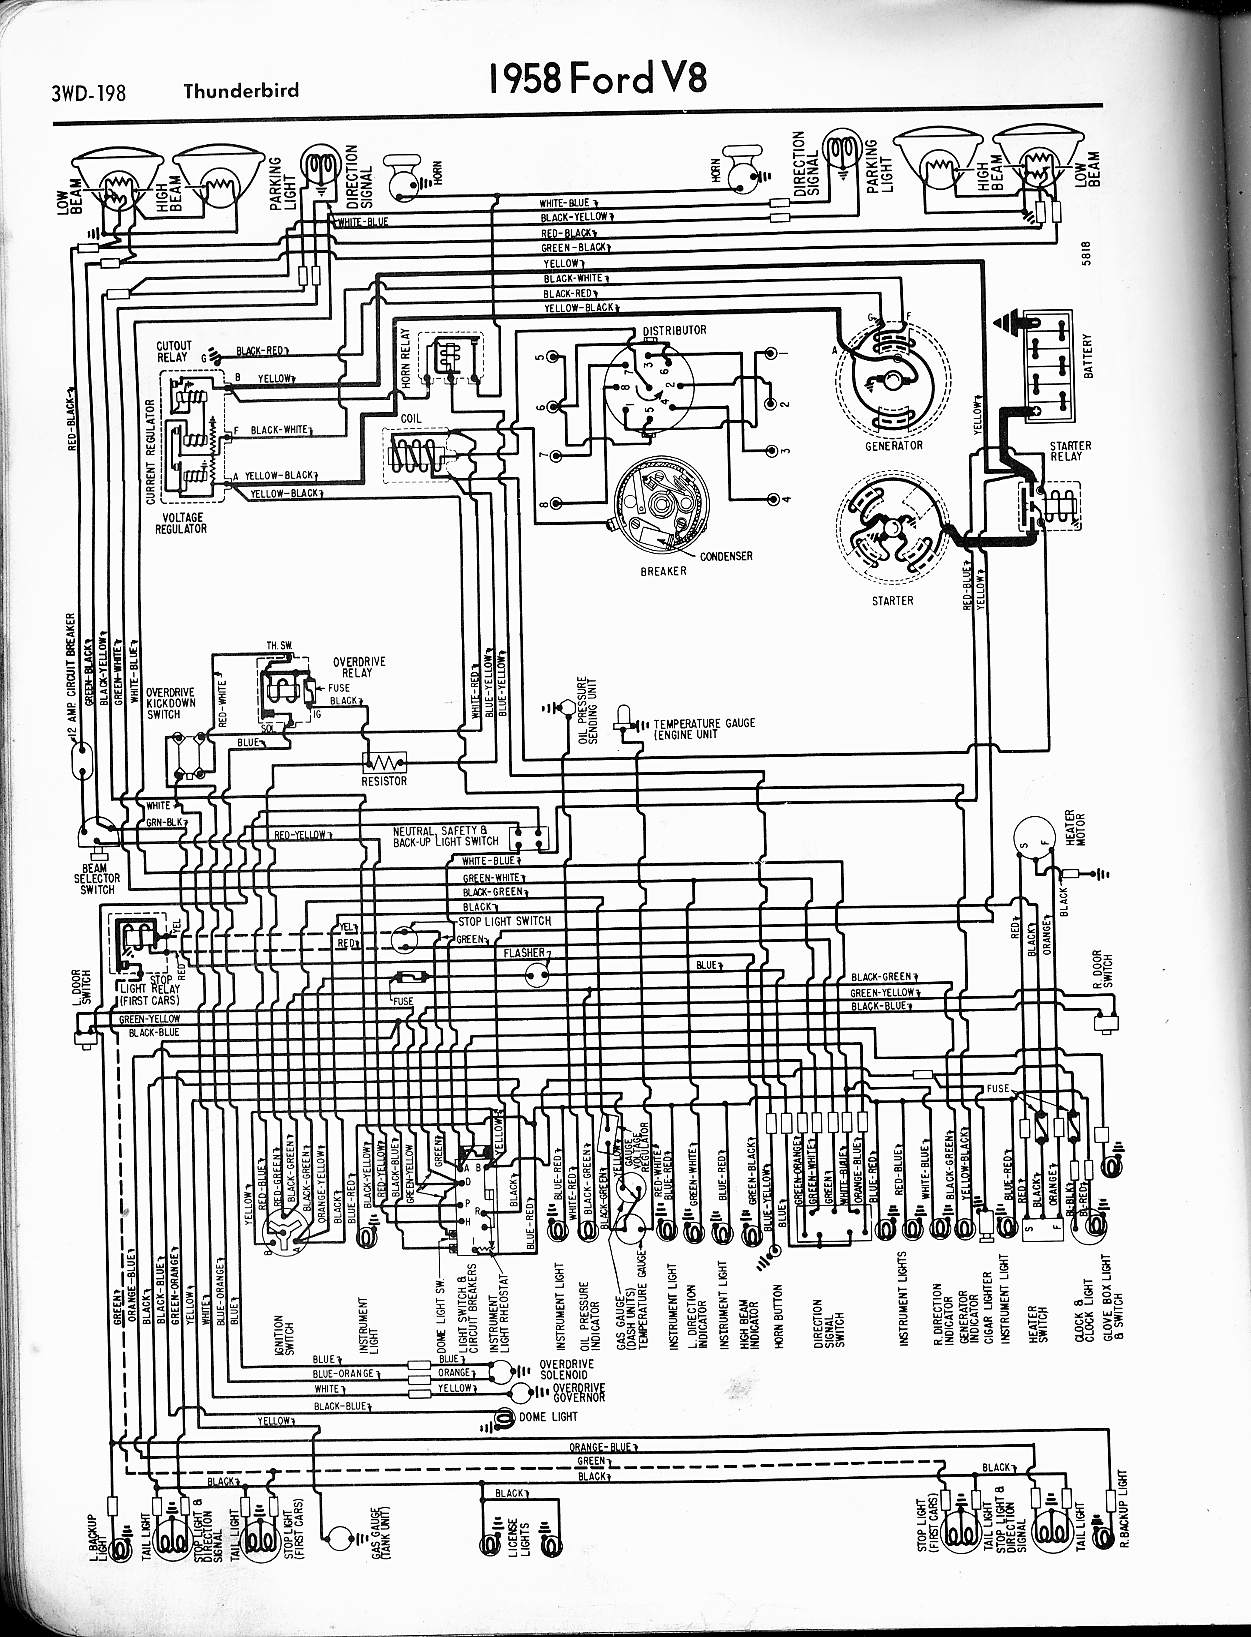 MWire5765 198 57 65 ford wiring diagrams 1955 ford f100 wiring diagram at crackthecode.co